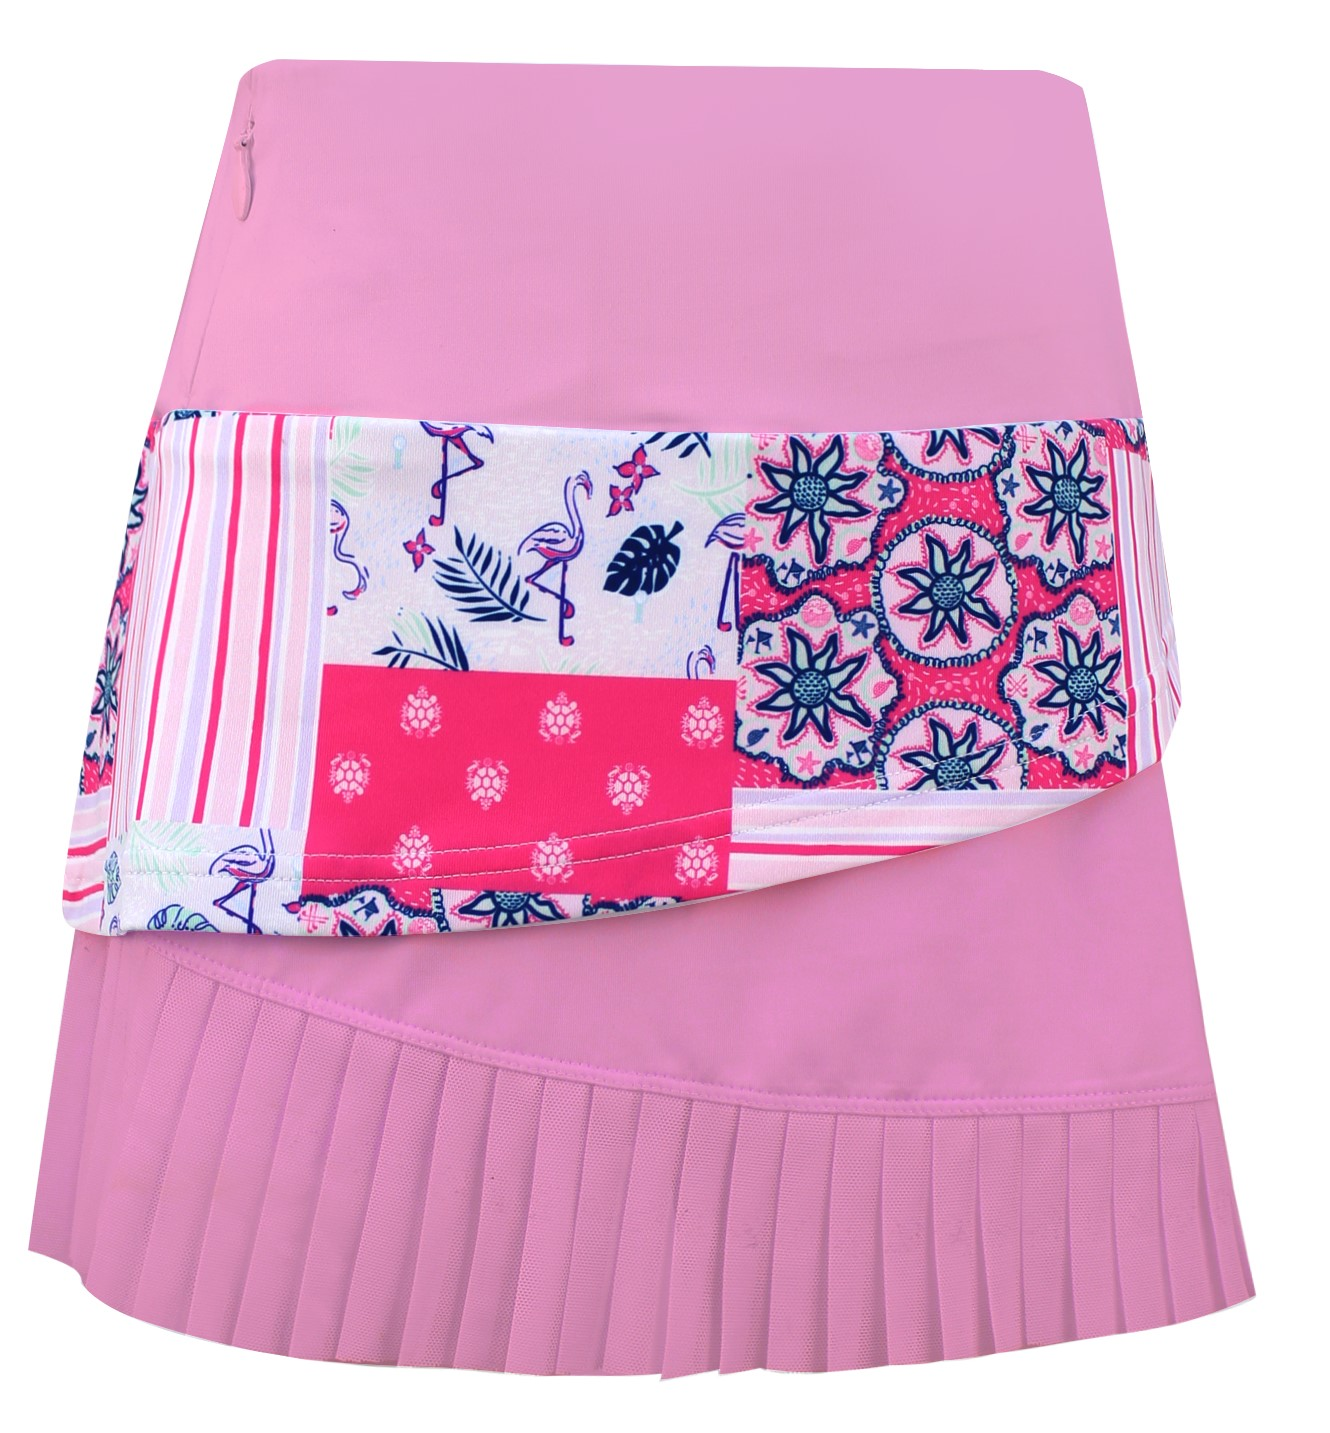 Emerson Tiered  Girls Golf & Tennis  Skort In Pink/Mad About Turtles Print